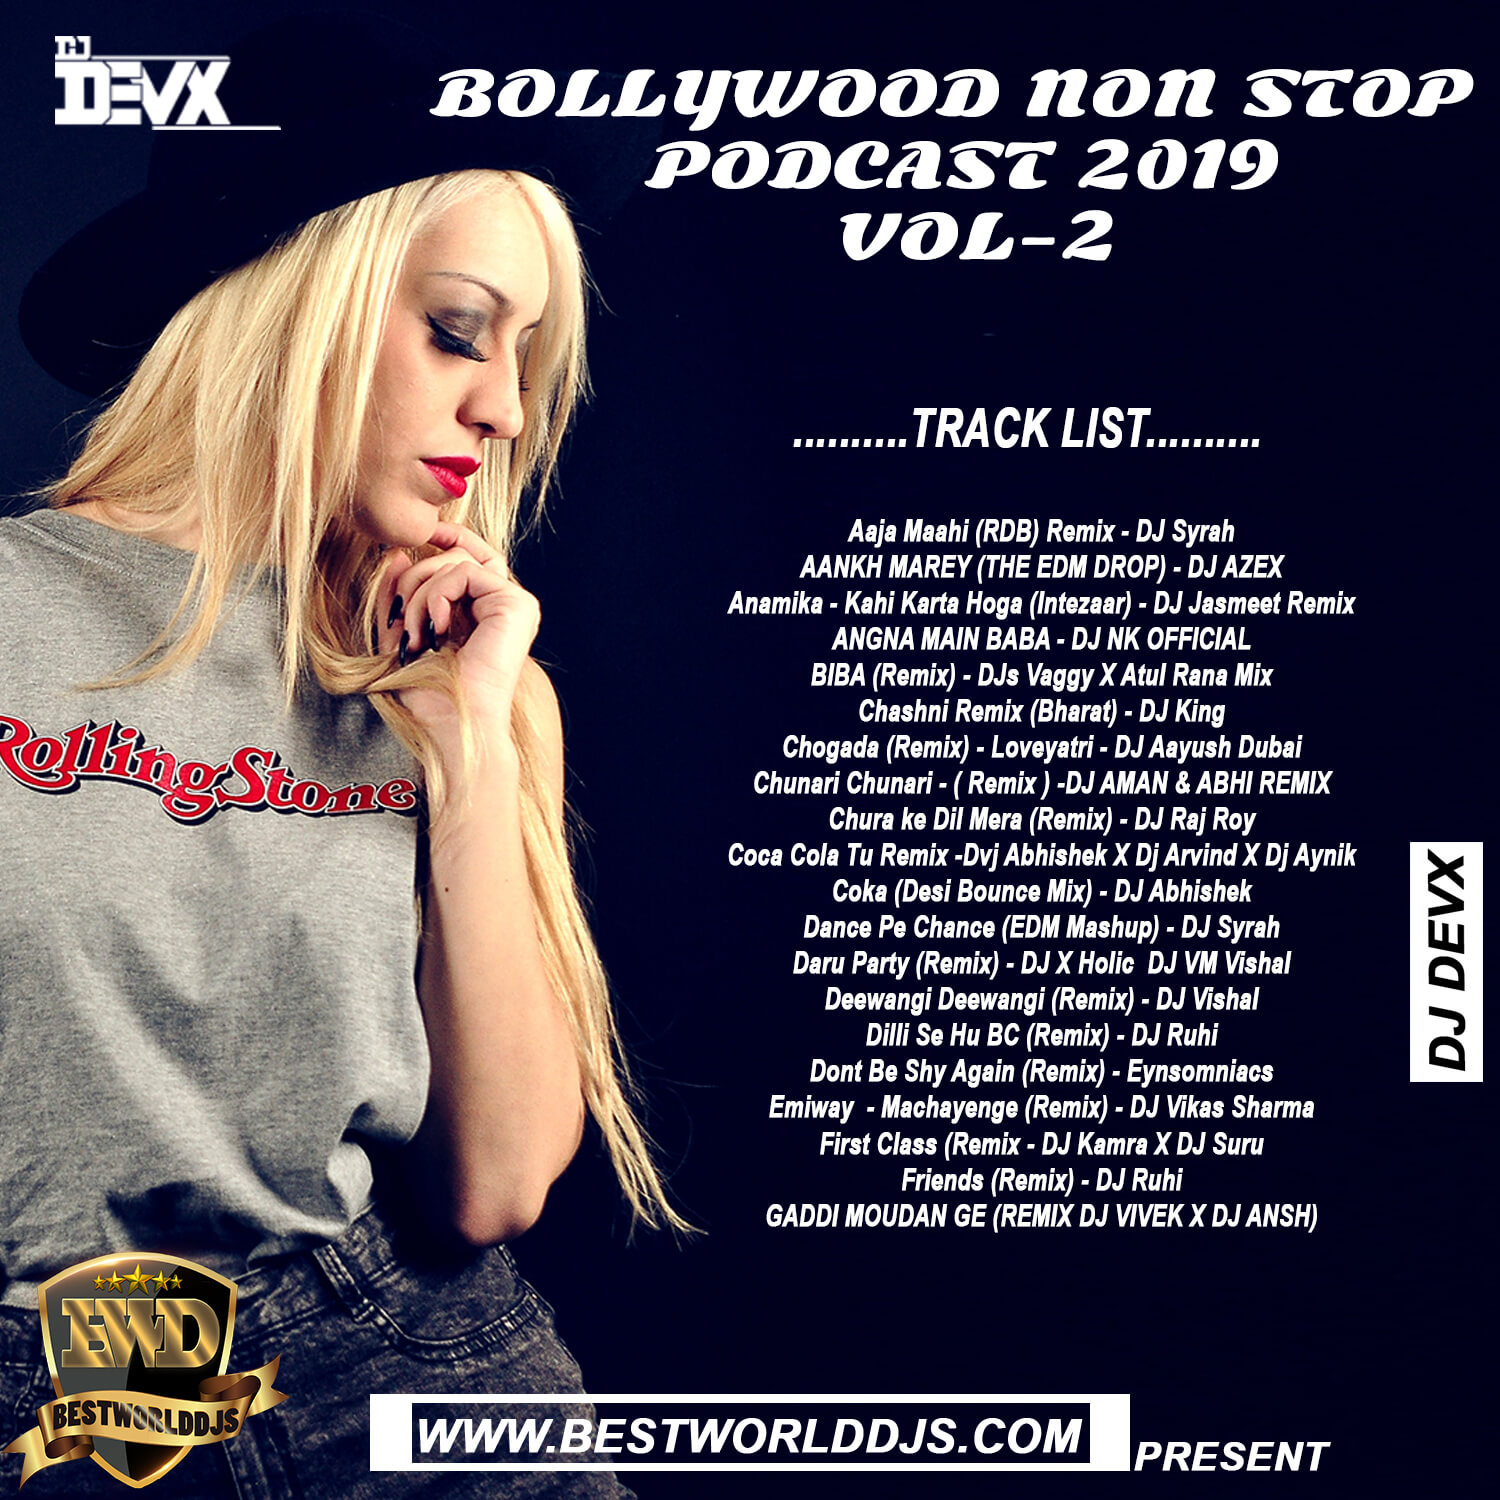 BOLLYWOOD NON STOP PODCAST 2019 VOL 2 DJ DEVX